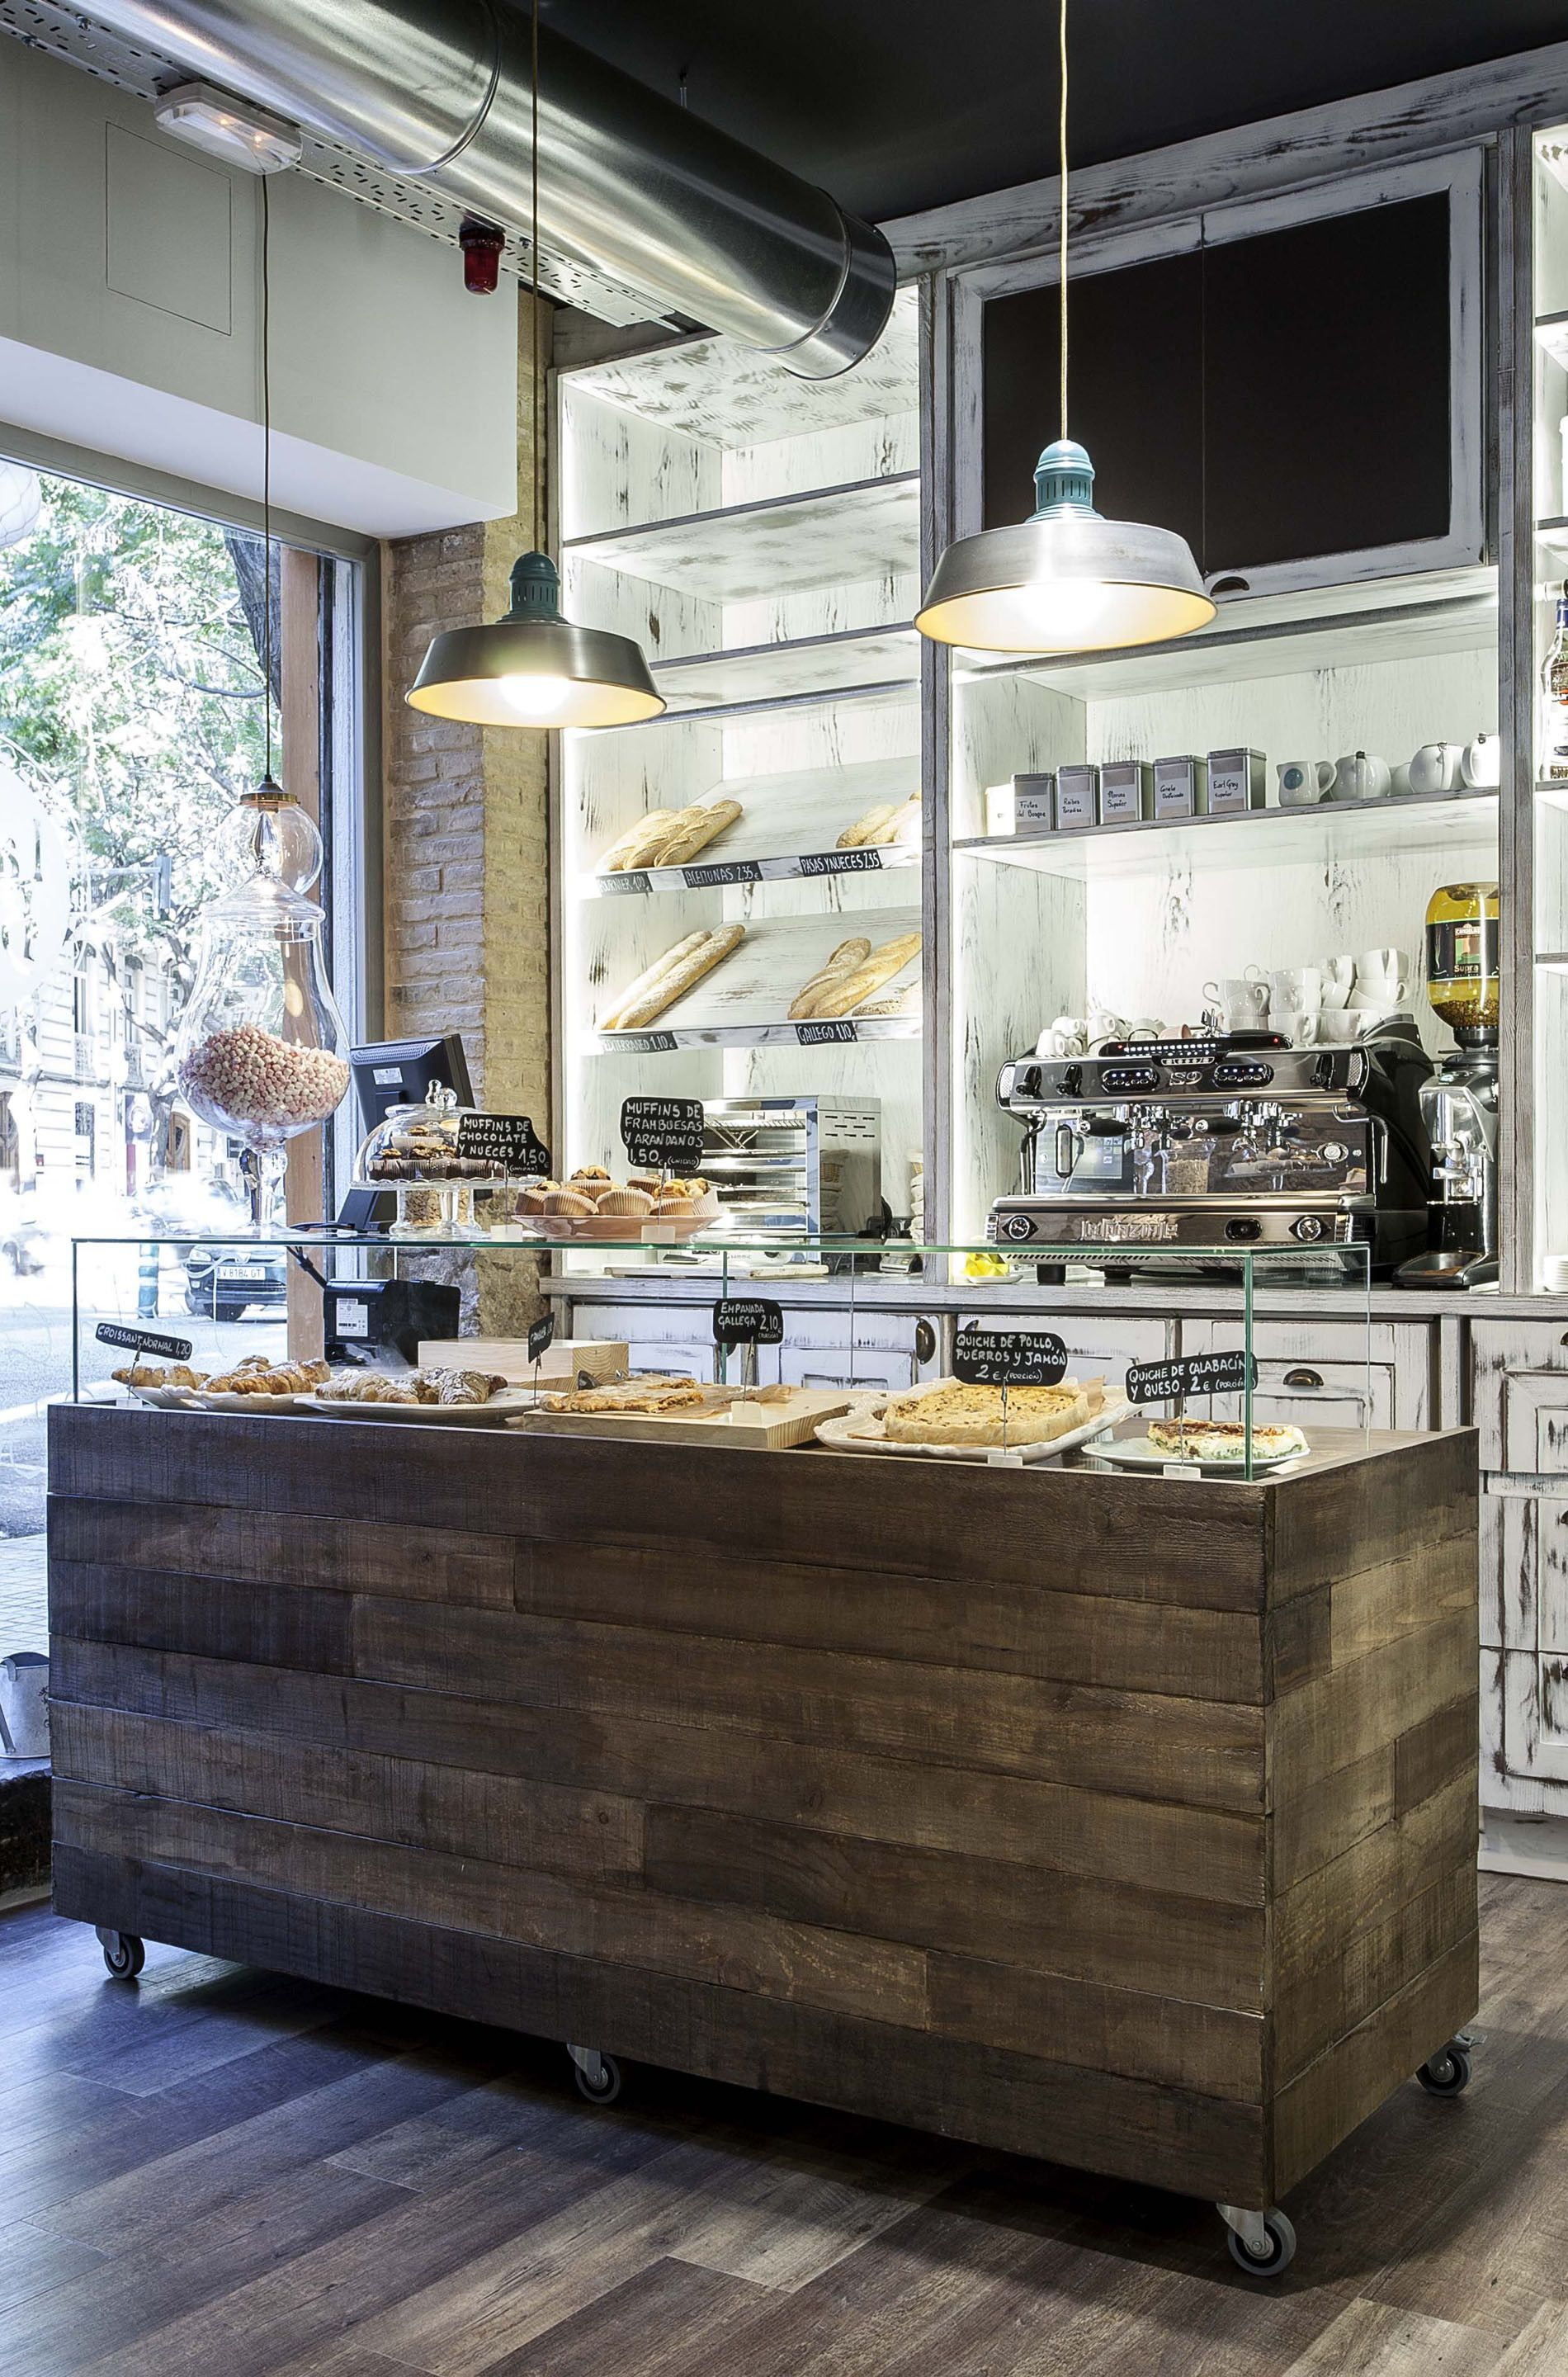 Gallery Of La Petite Brioche Binomio Estudio 5 Rustic Coffee